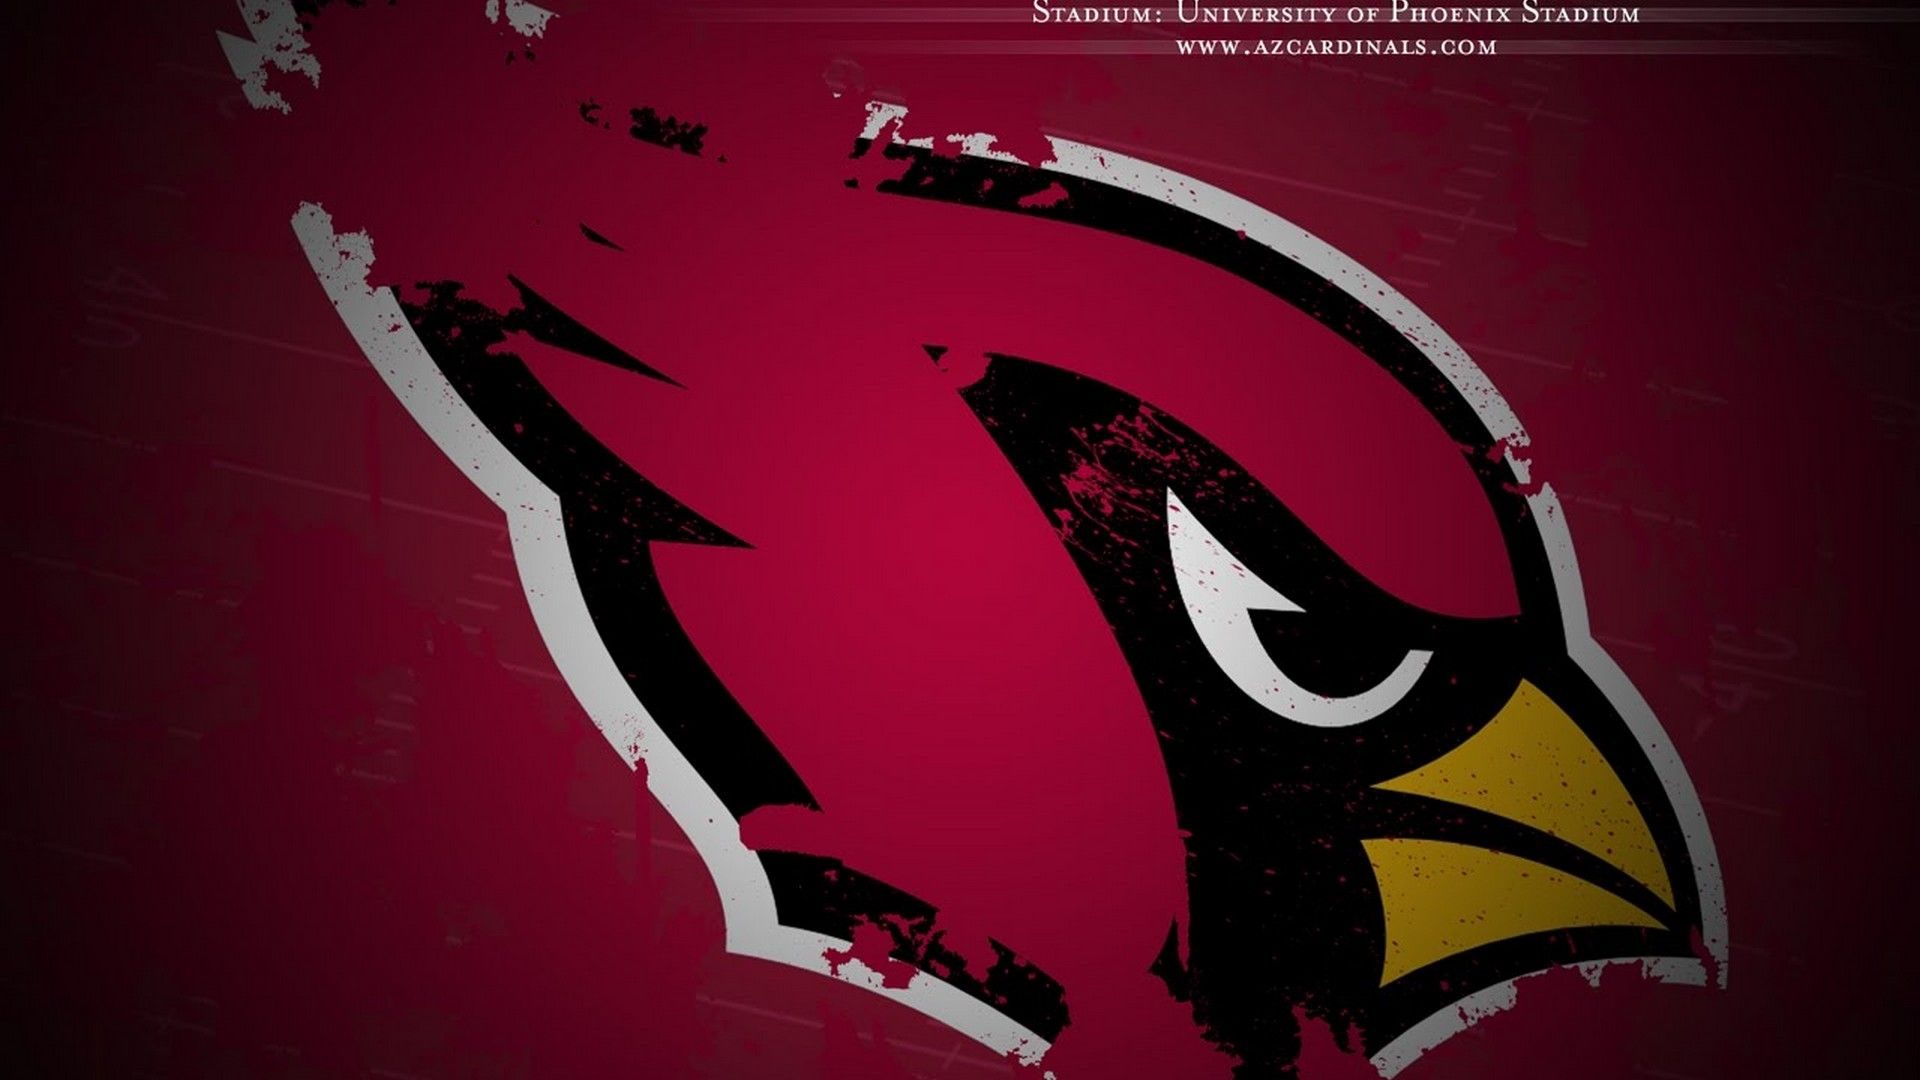 Wallpaper Desktop Arizona Cardinals Hd 2020 Nfl Football Wallpapers Cardinals Wallpaper Arizona Cardinals Wallpaper Football Wallpaper